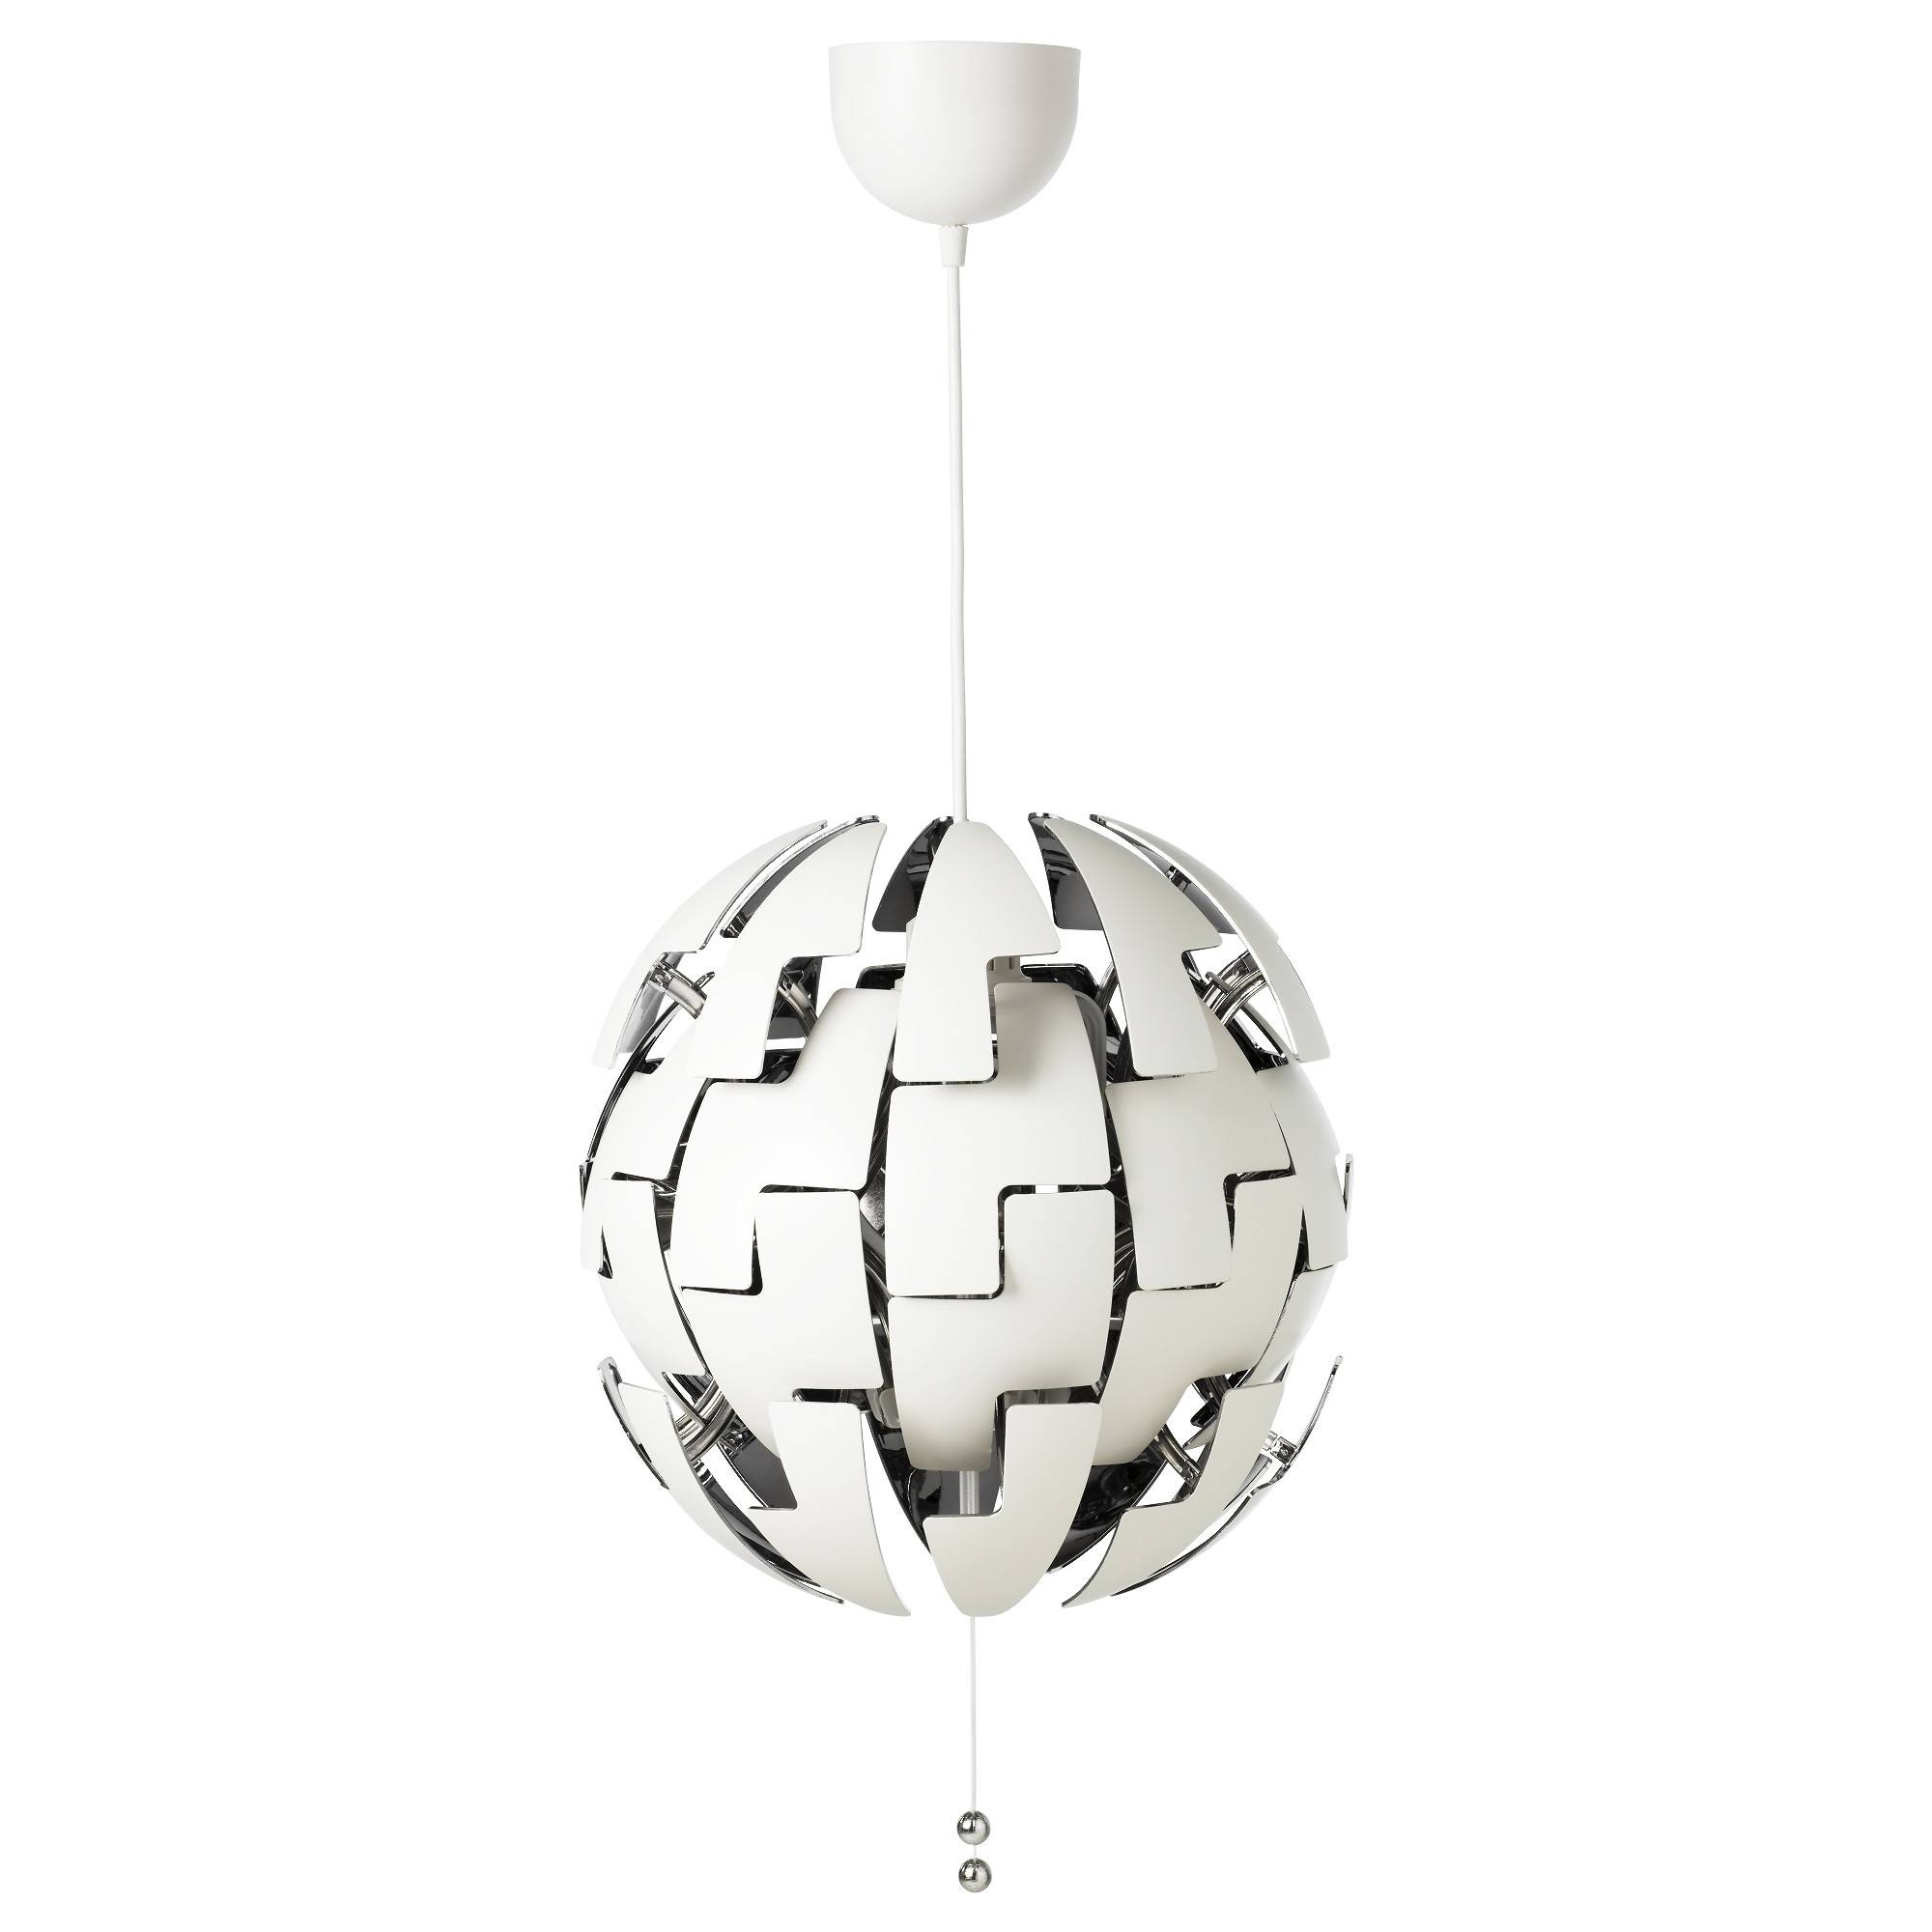 Ikea Ps 2014 Pendant Lamp - White/copper Color - Ikea pertaining to Ikea Pendant Lights (Image 9 of 15)